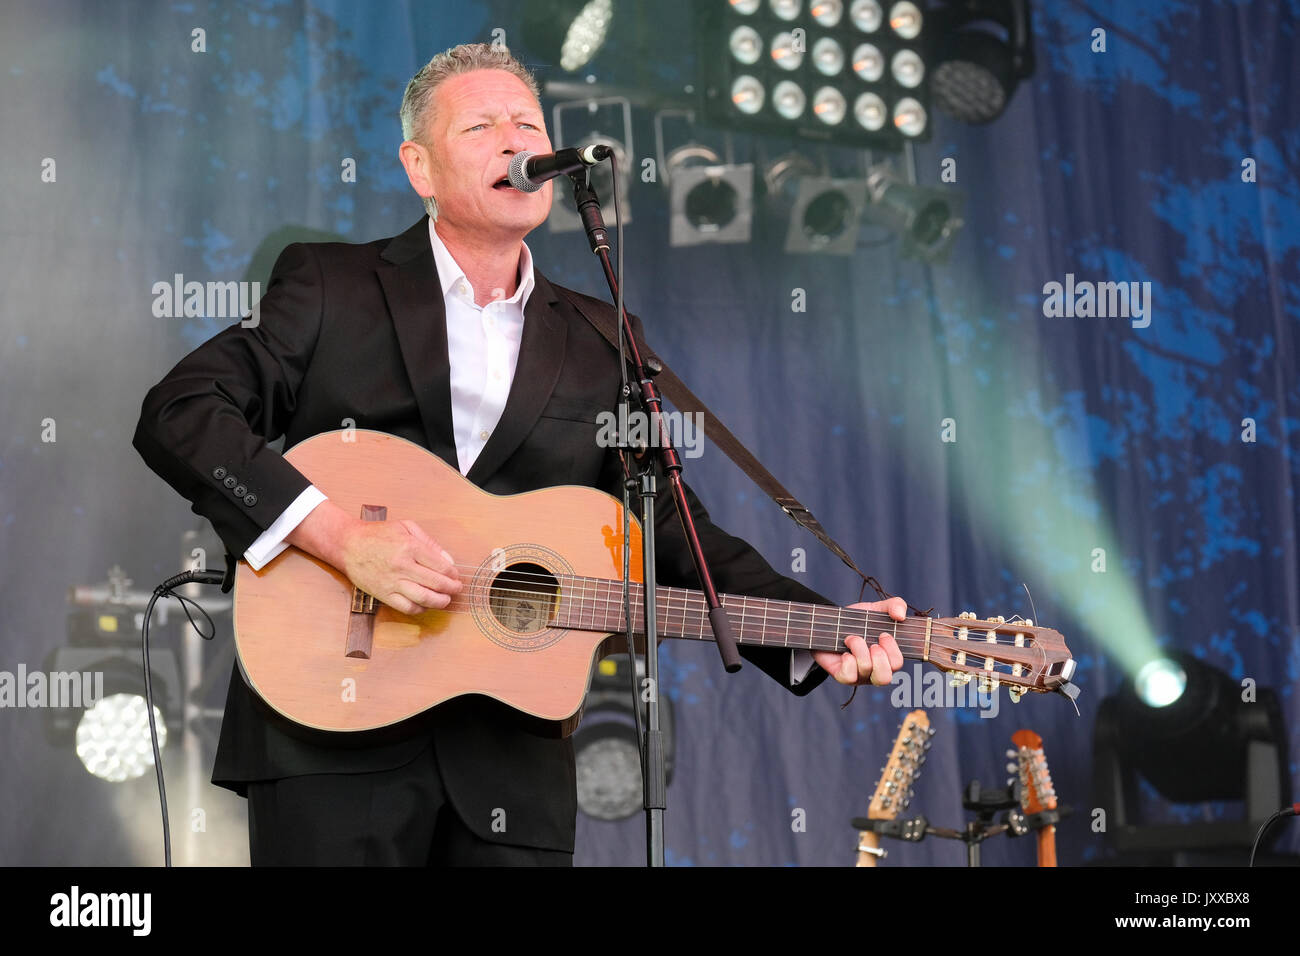 Gerry Colvin performing with The Gerry Colvin Band at Cropredy Festival, Banbury, Oxfordshire, England, August 11, 2017 - Stock Image